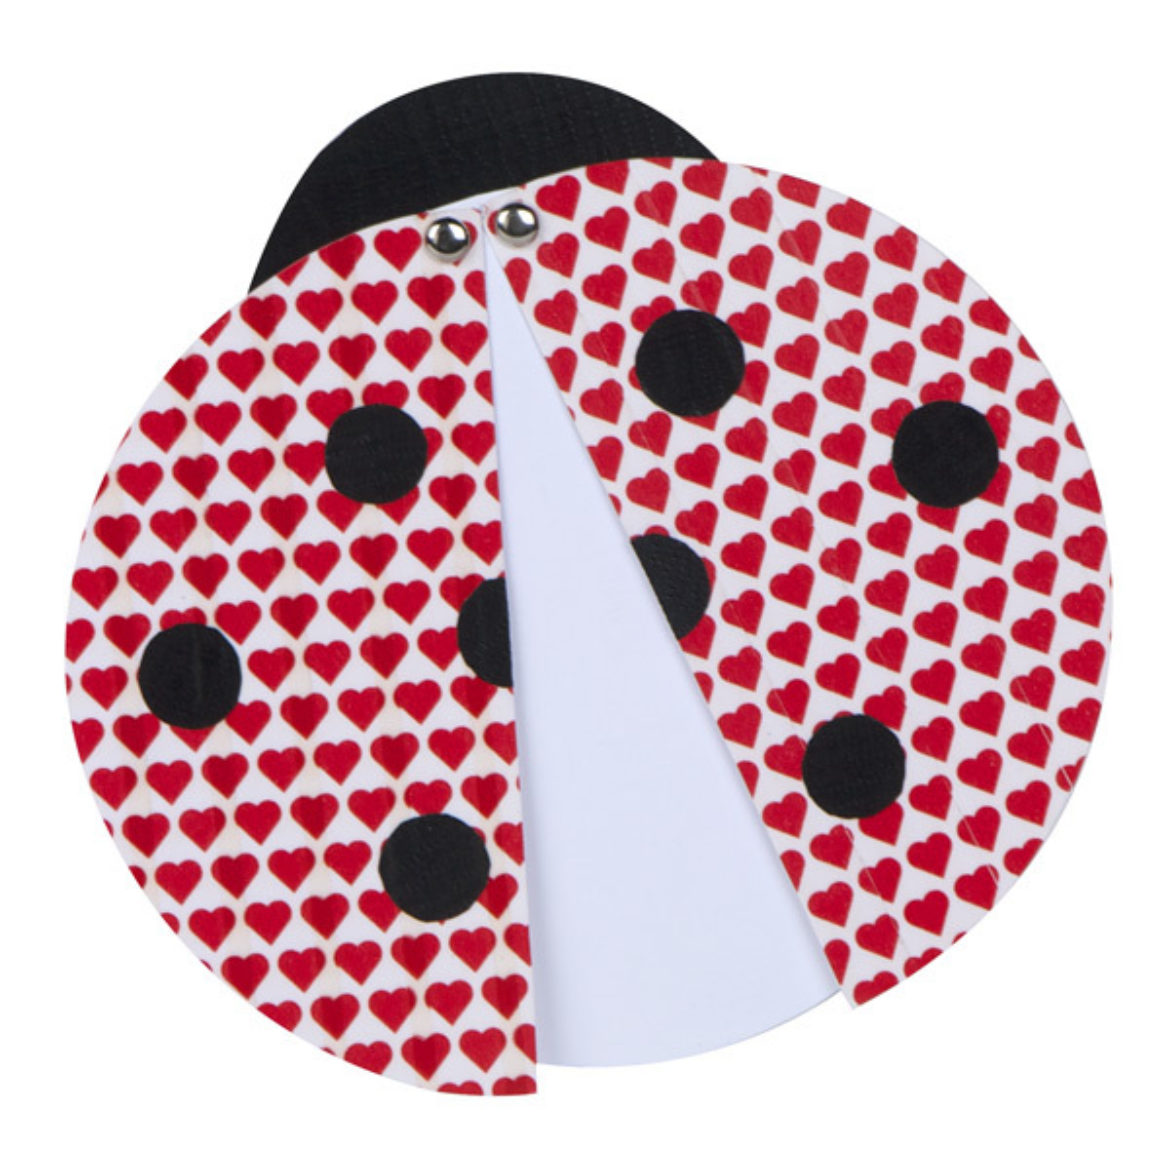 Completed Duck Tape® Ladybug Card